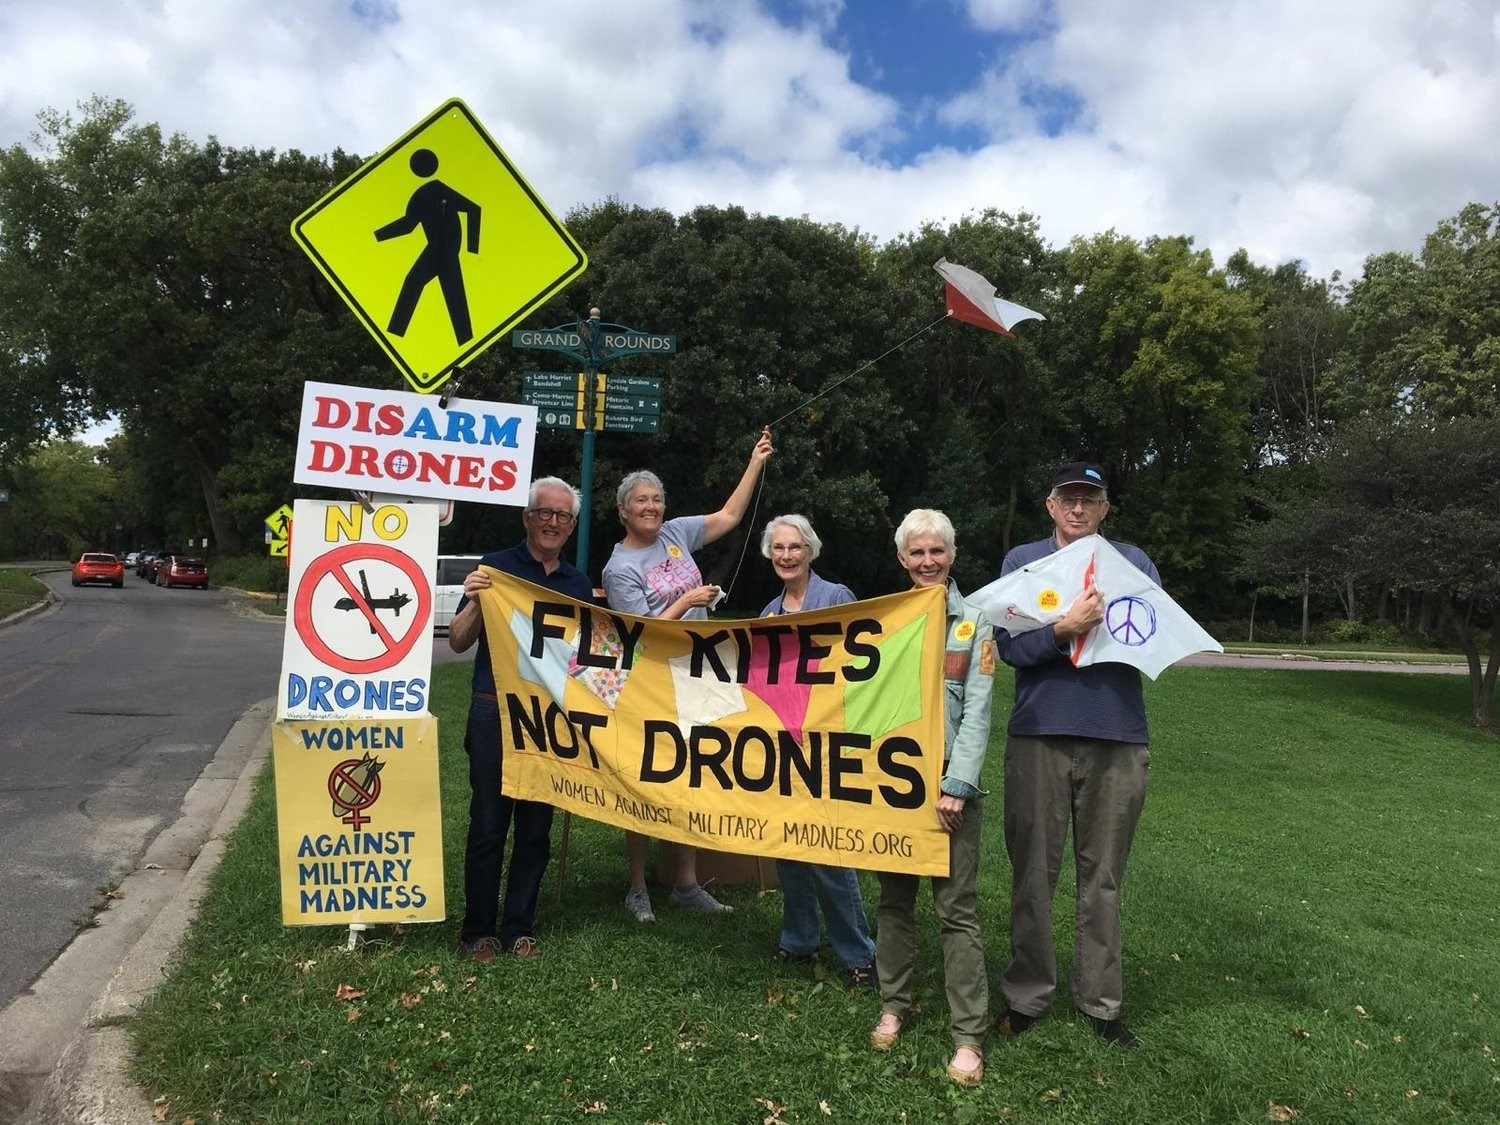 Several members of the Ground All Drones committee participating in their most popular and well known action, flying kites not drones!